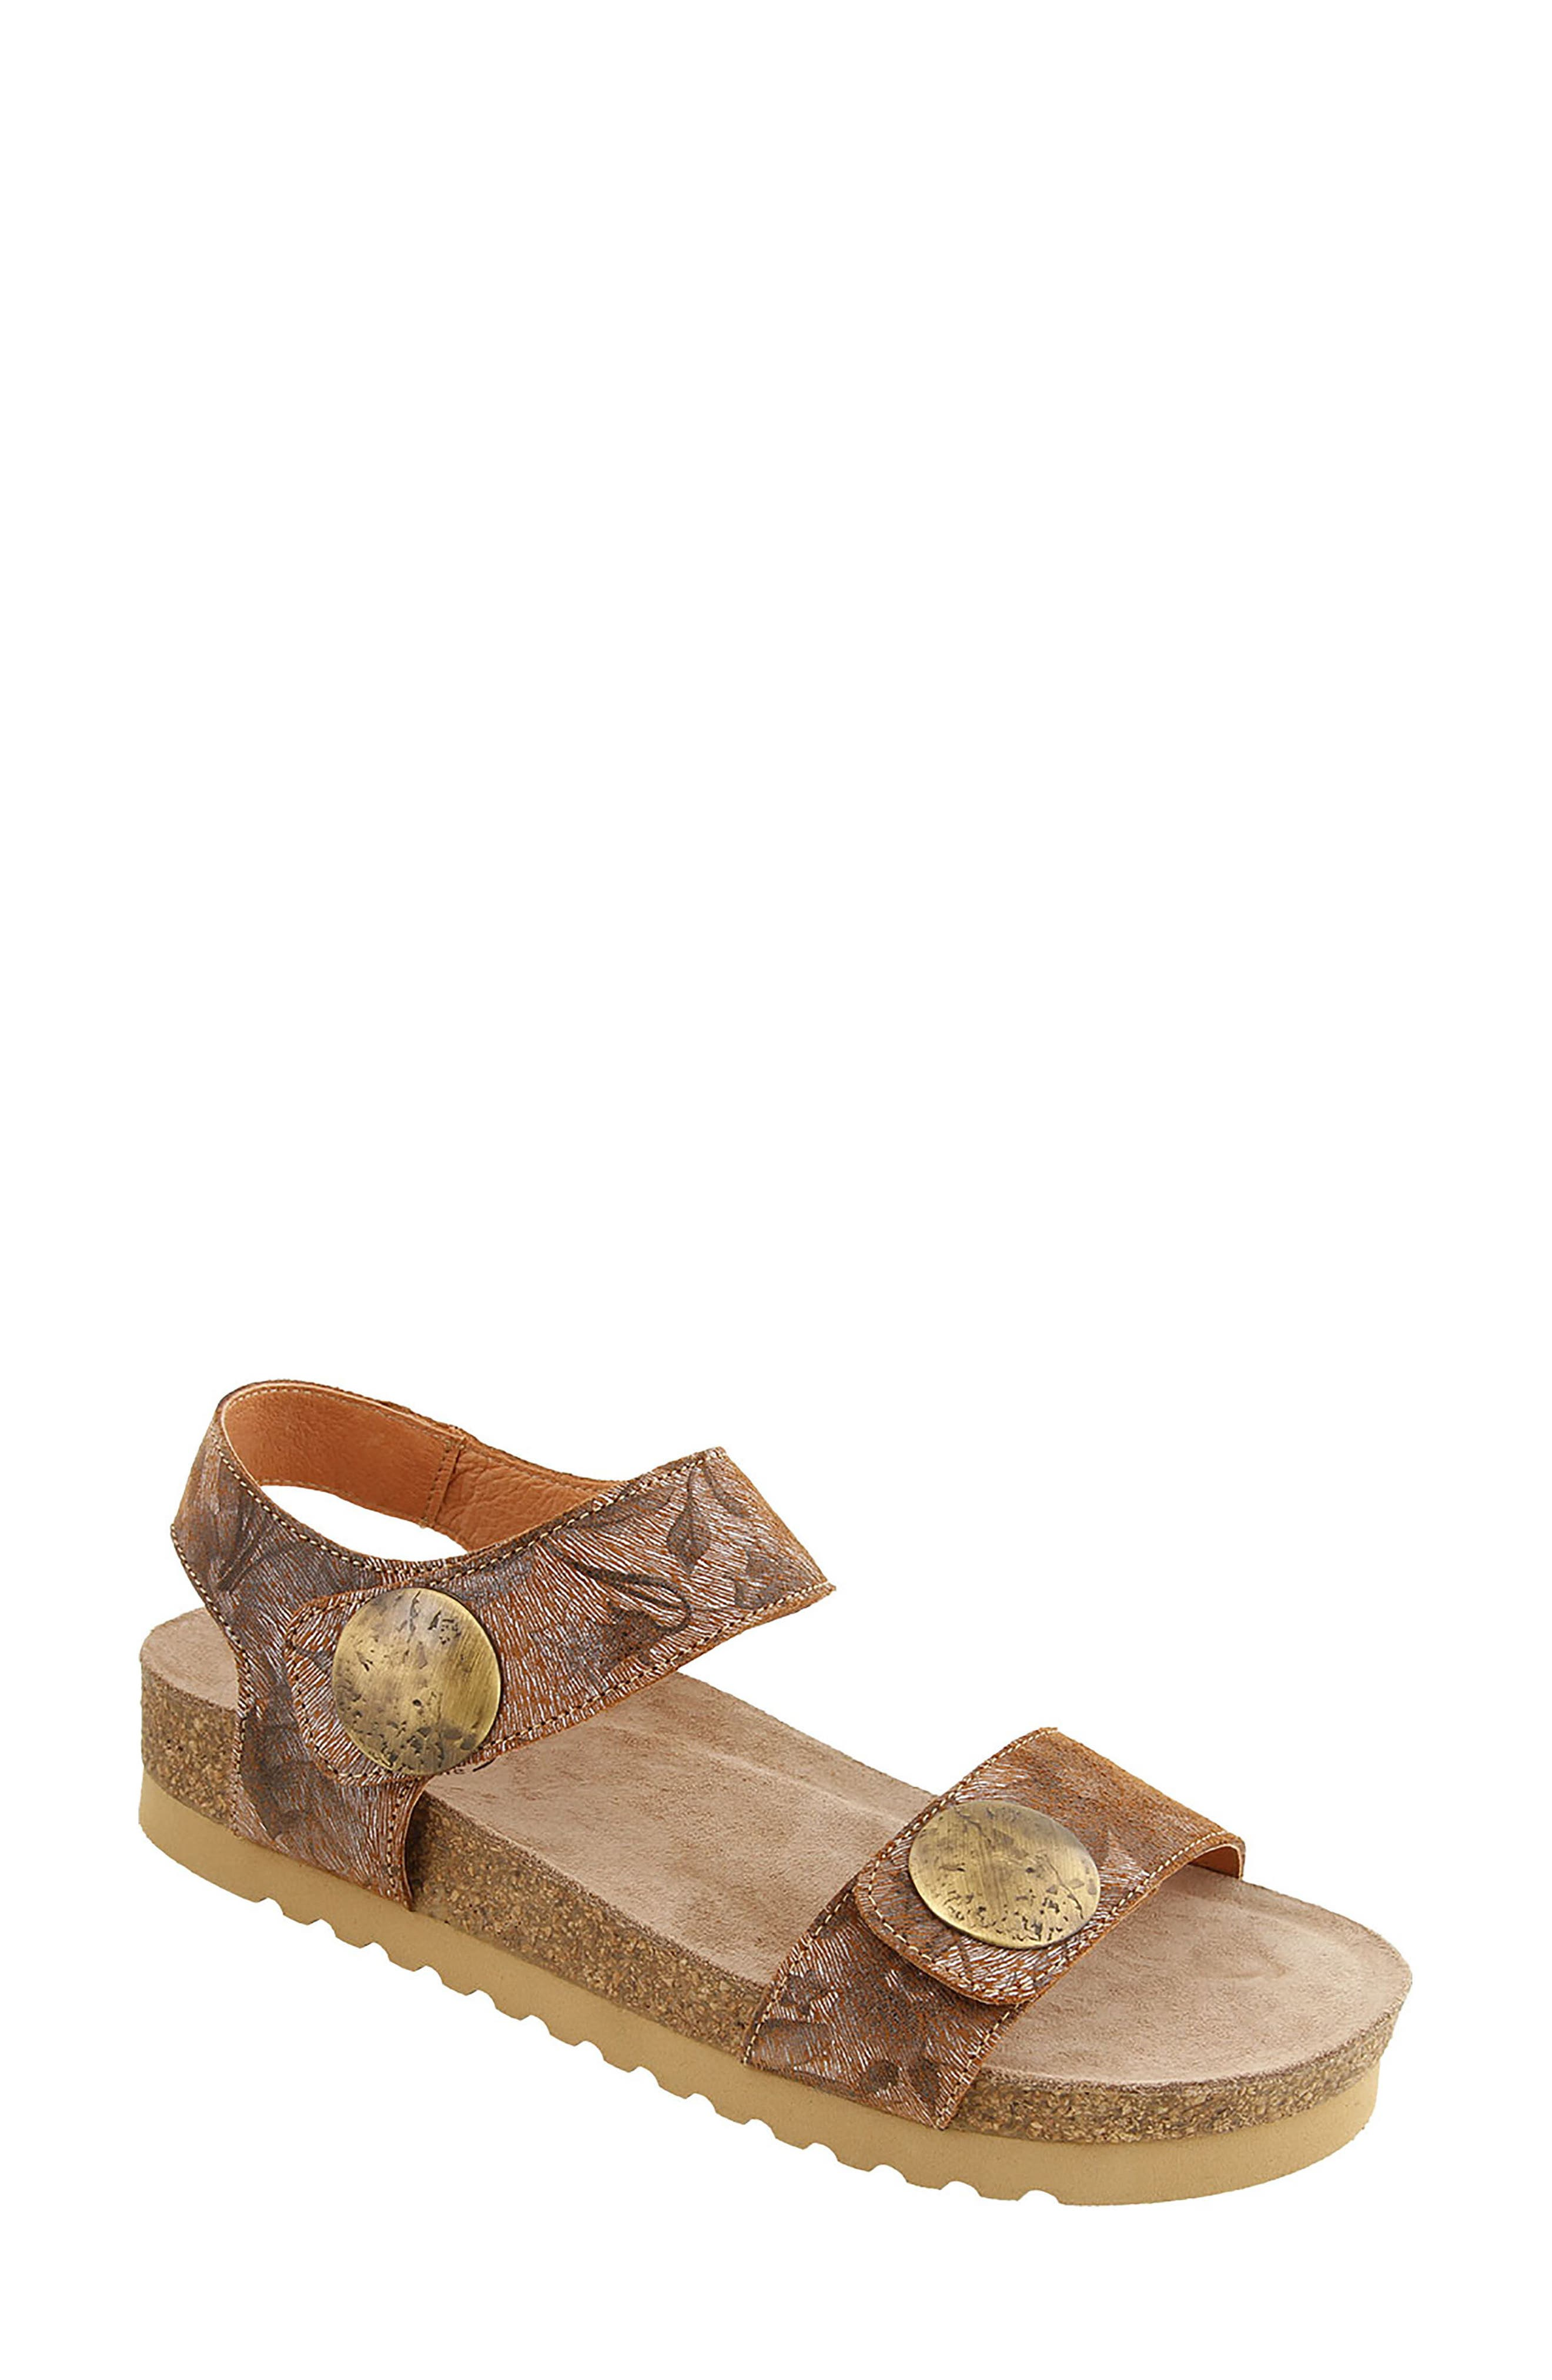 Luckie Sandal,                             Main thumbnail 4, color,